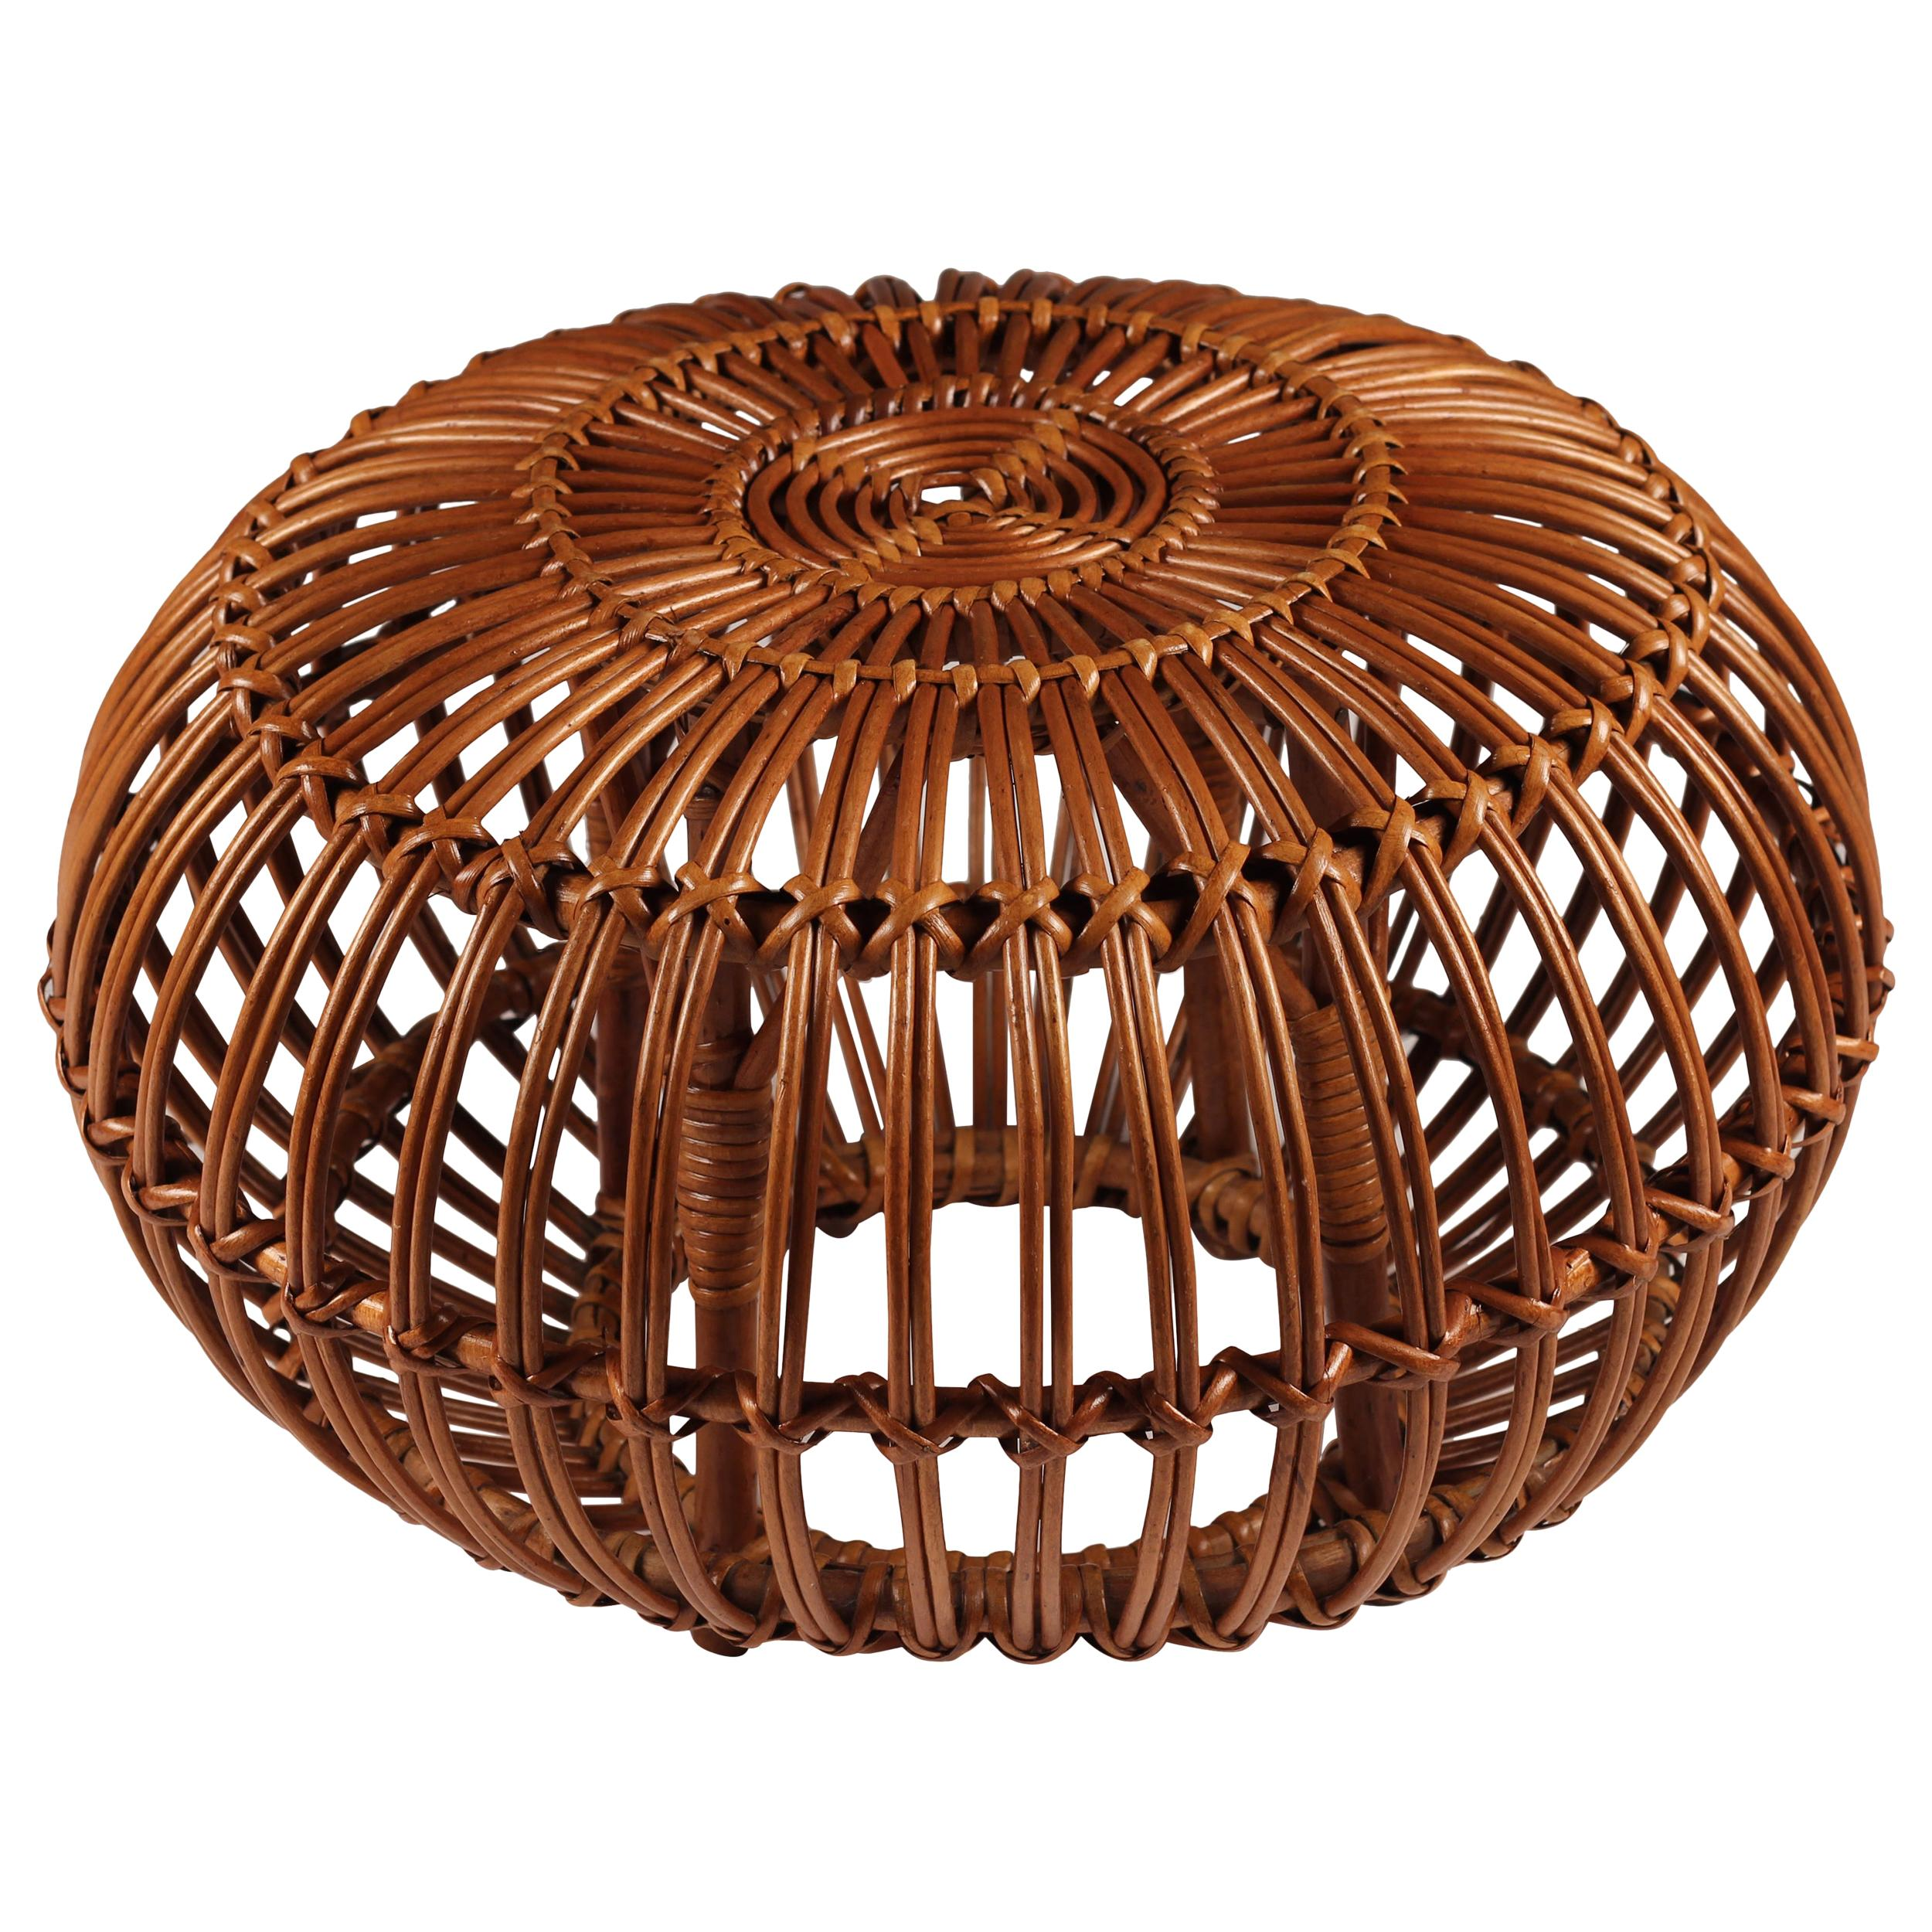 Mid Century Wicker and Cane Ottoman, Stool or Side Table